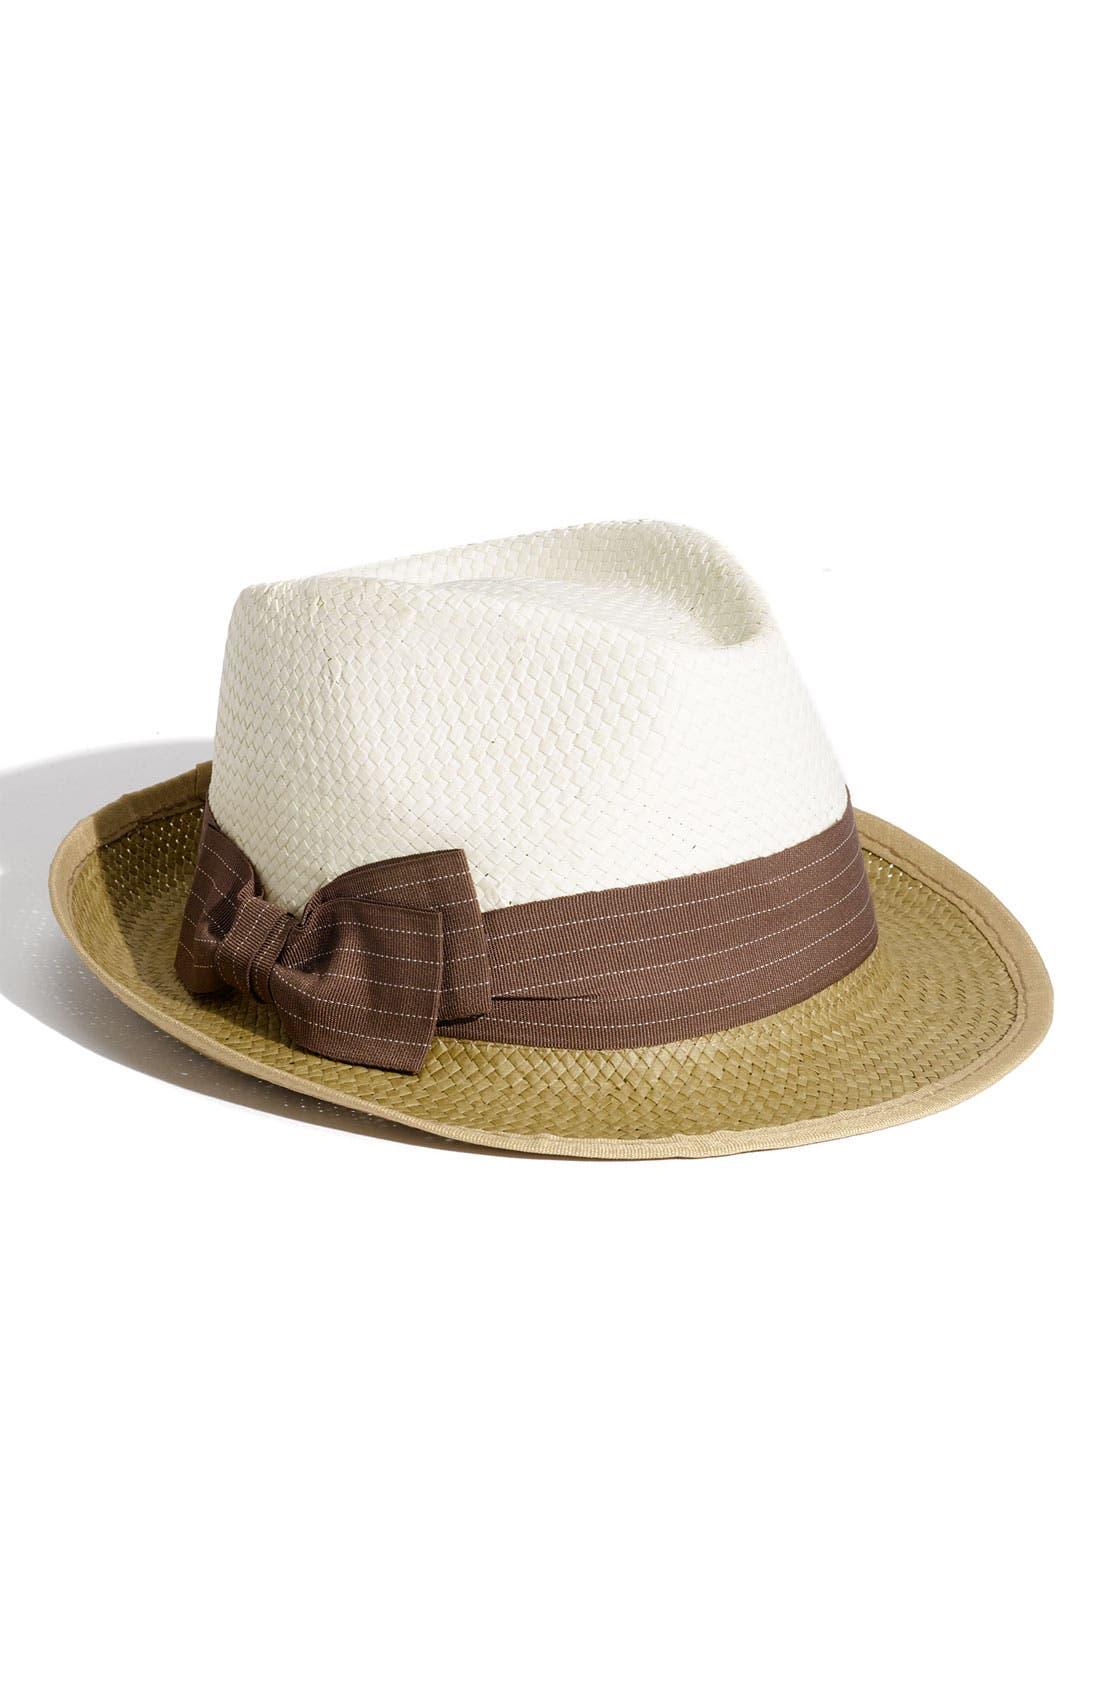 Alternate Image 1 Selected - Halogen® Two Tone Fedora